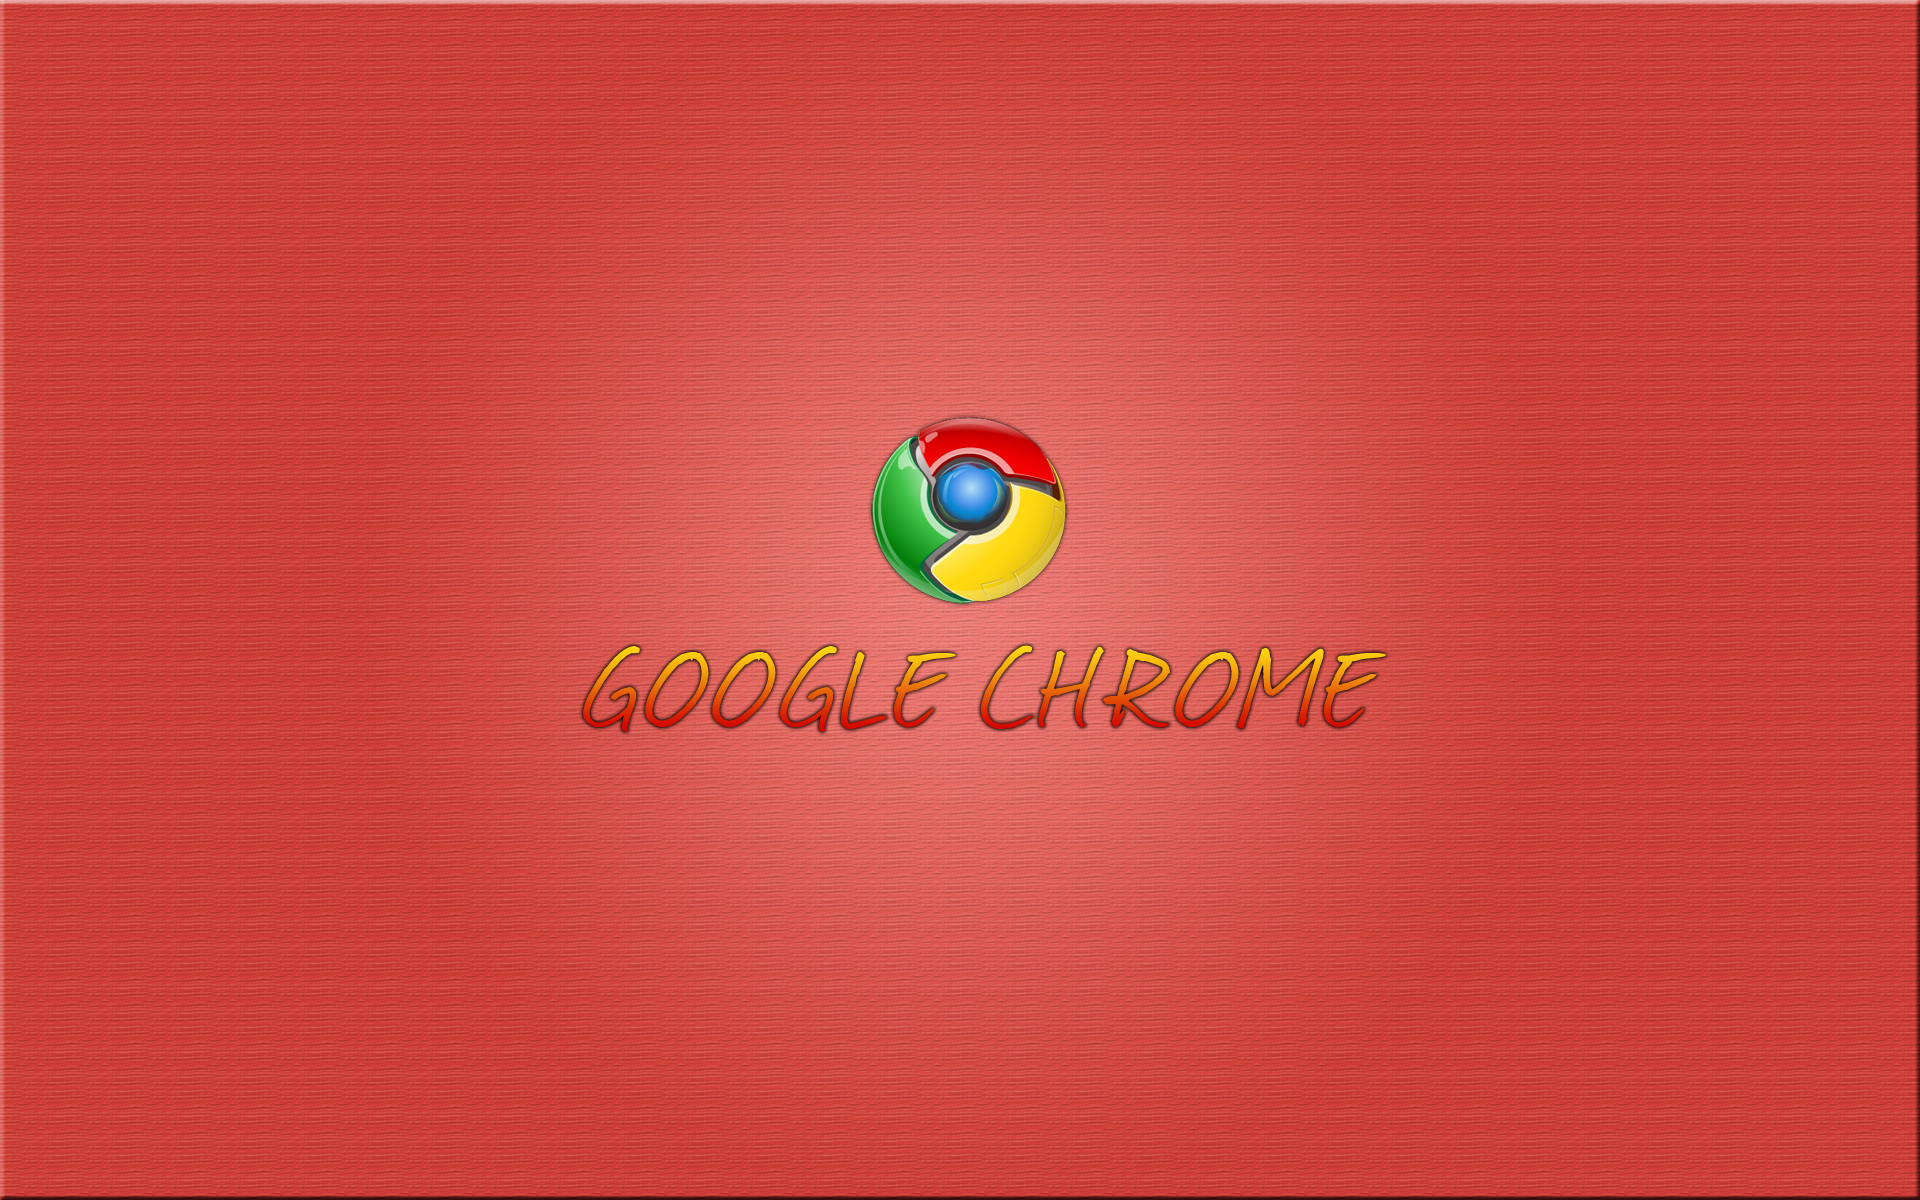 Backgrounds for Chrome 48 images